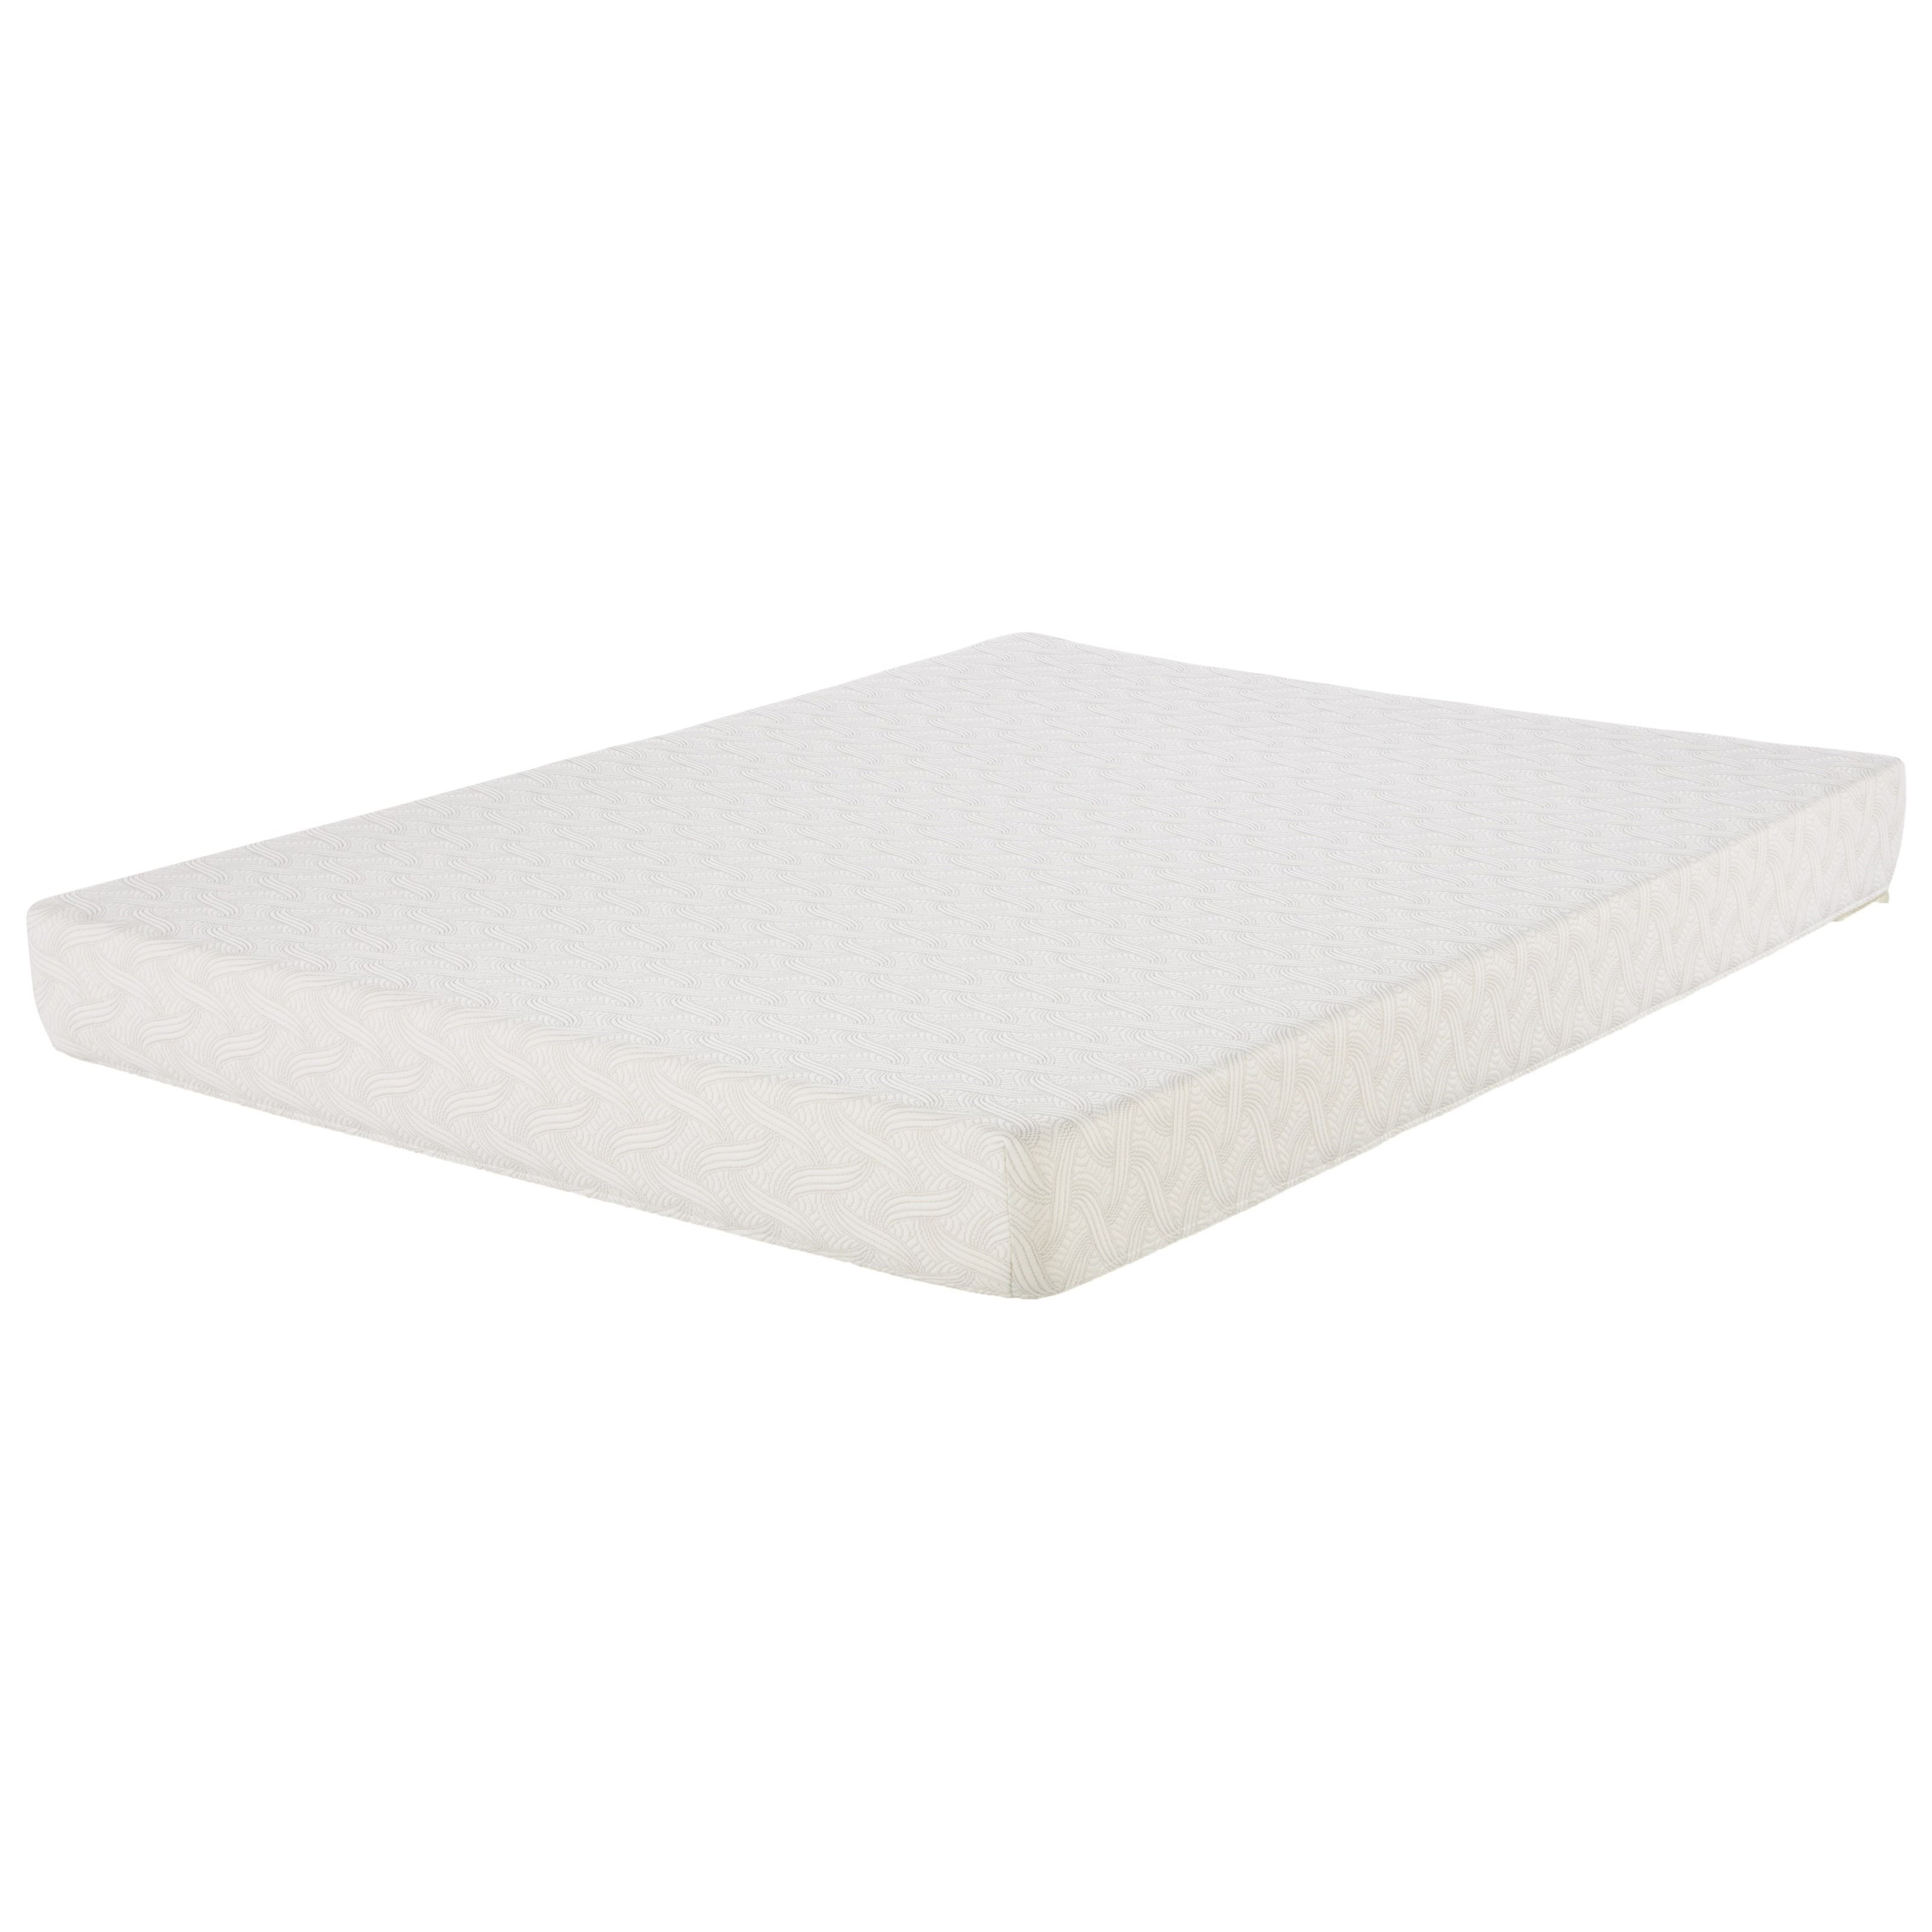 "Serta Feilding King 7"" Memory Foam Mattress Adj Set - Item Number: 500573287-1060+2x500826619-7520"